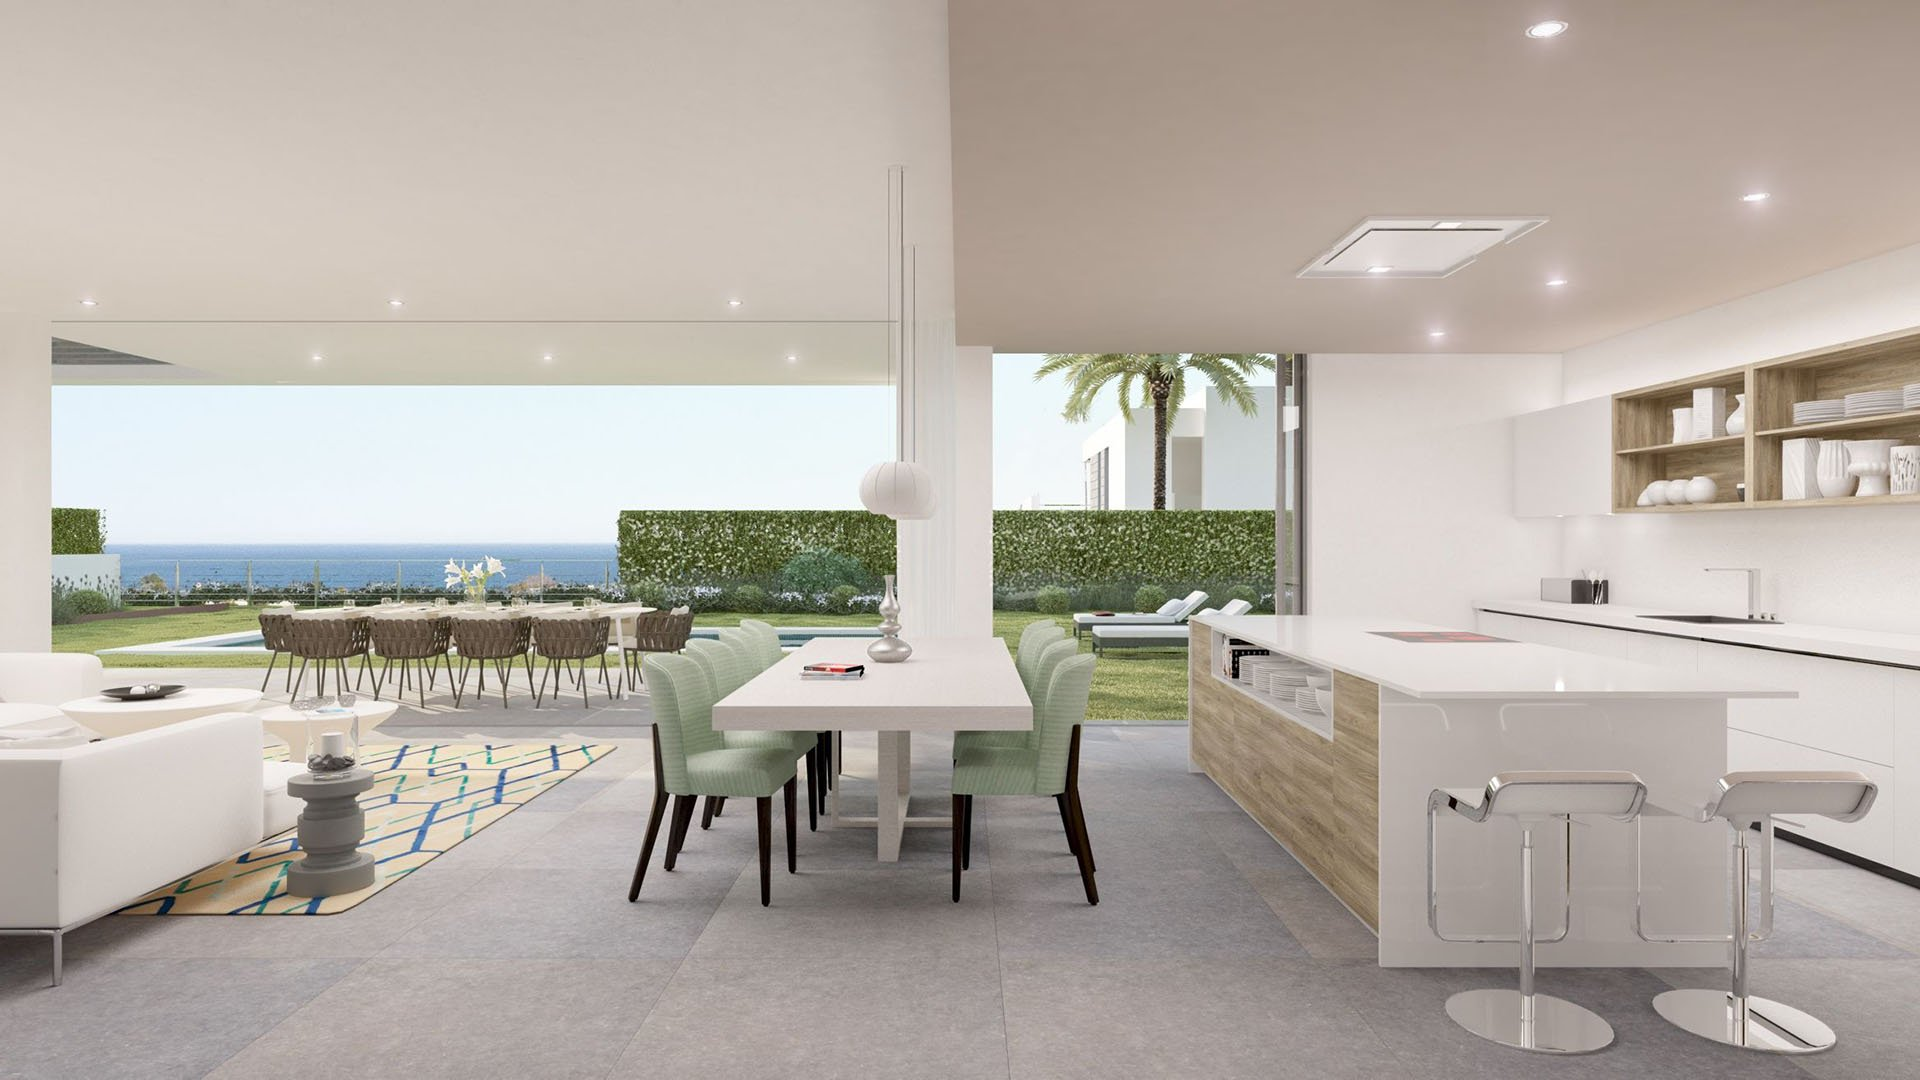 SYZYGY – The Villas: Modern villas in a strategic location